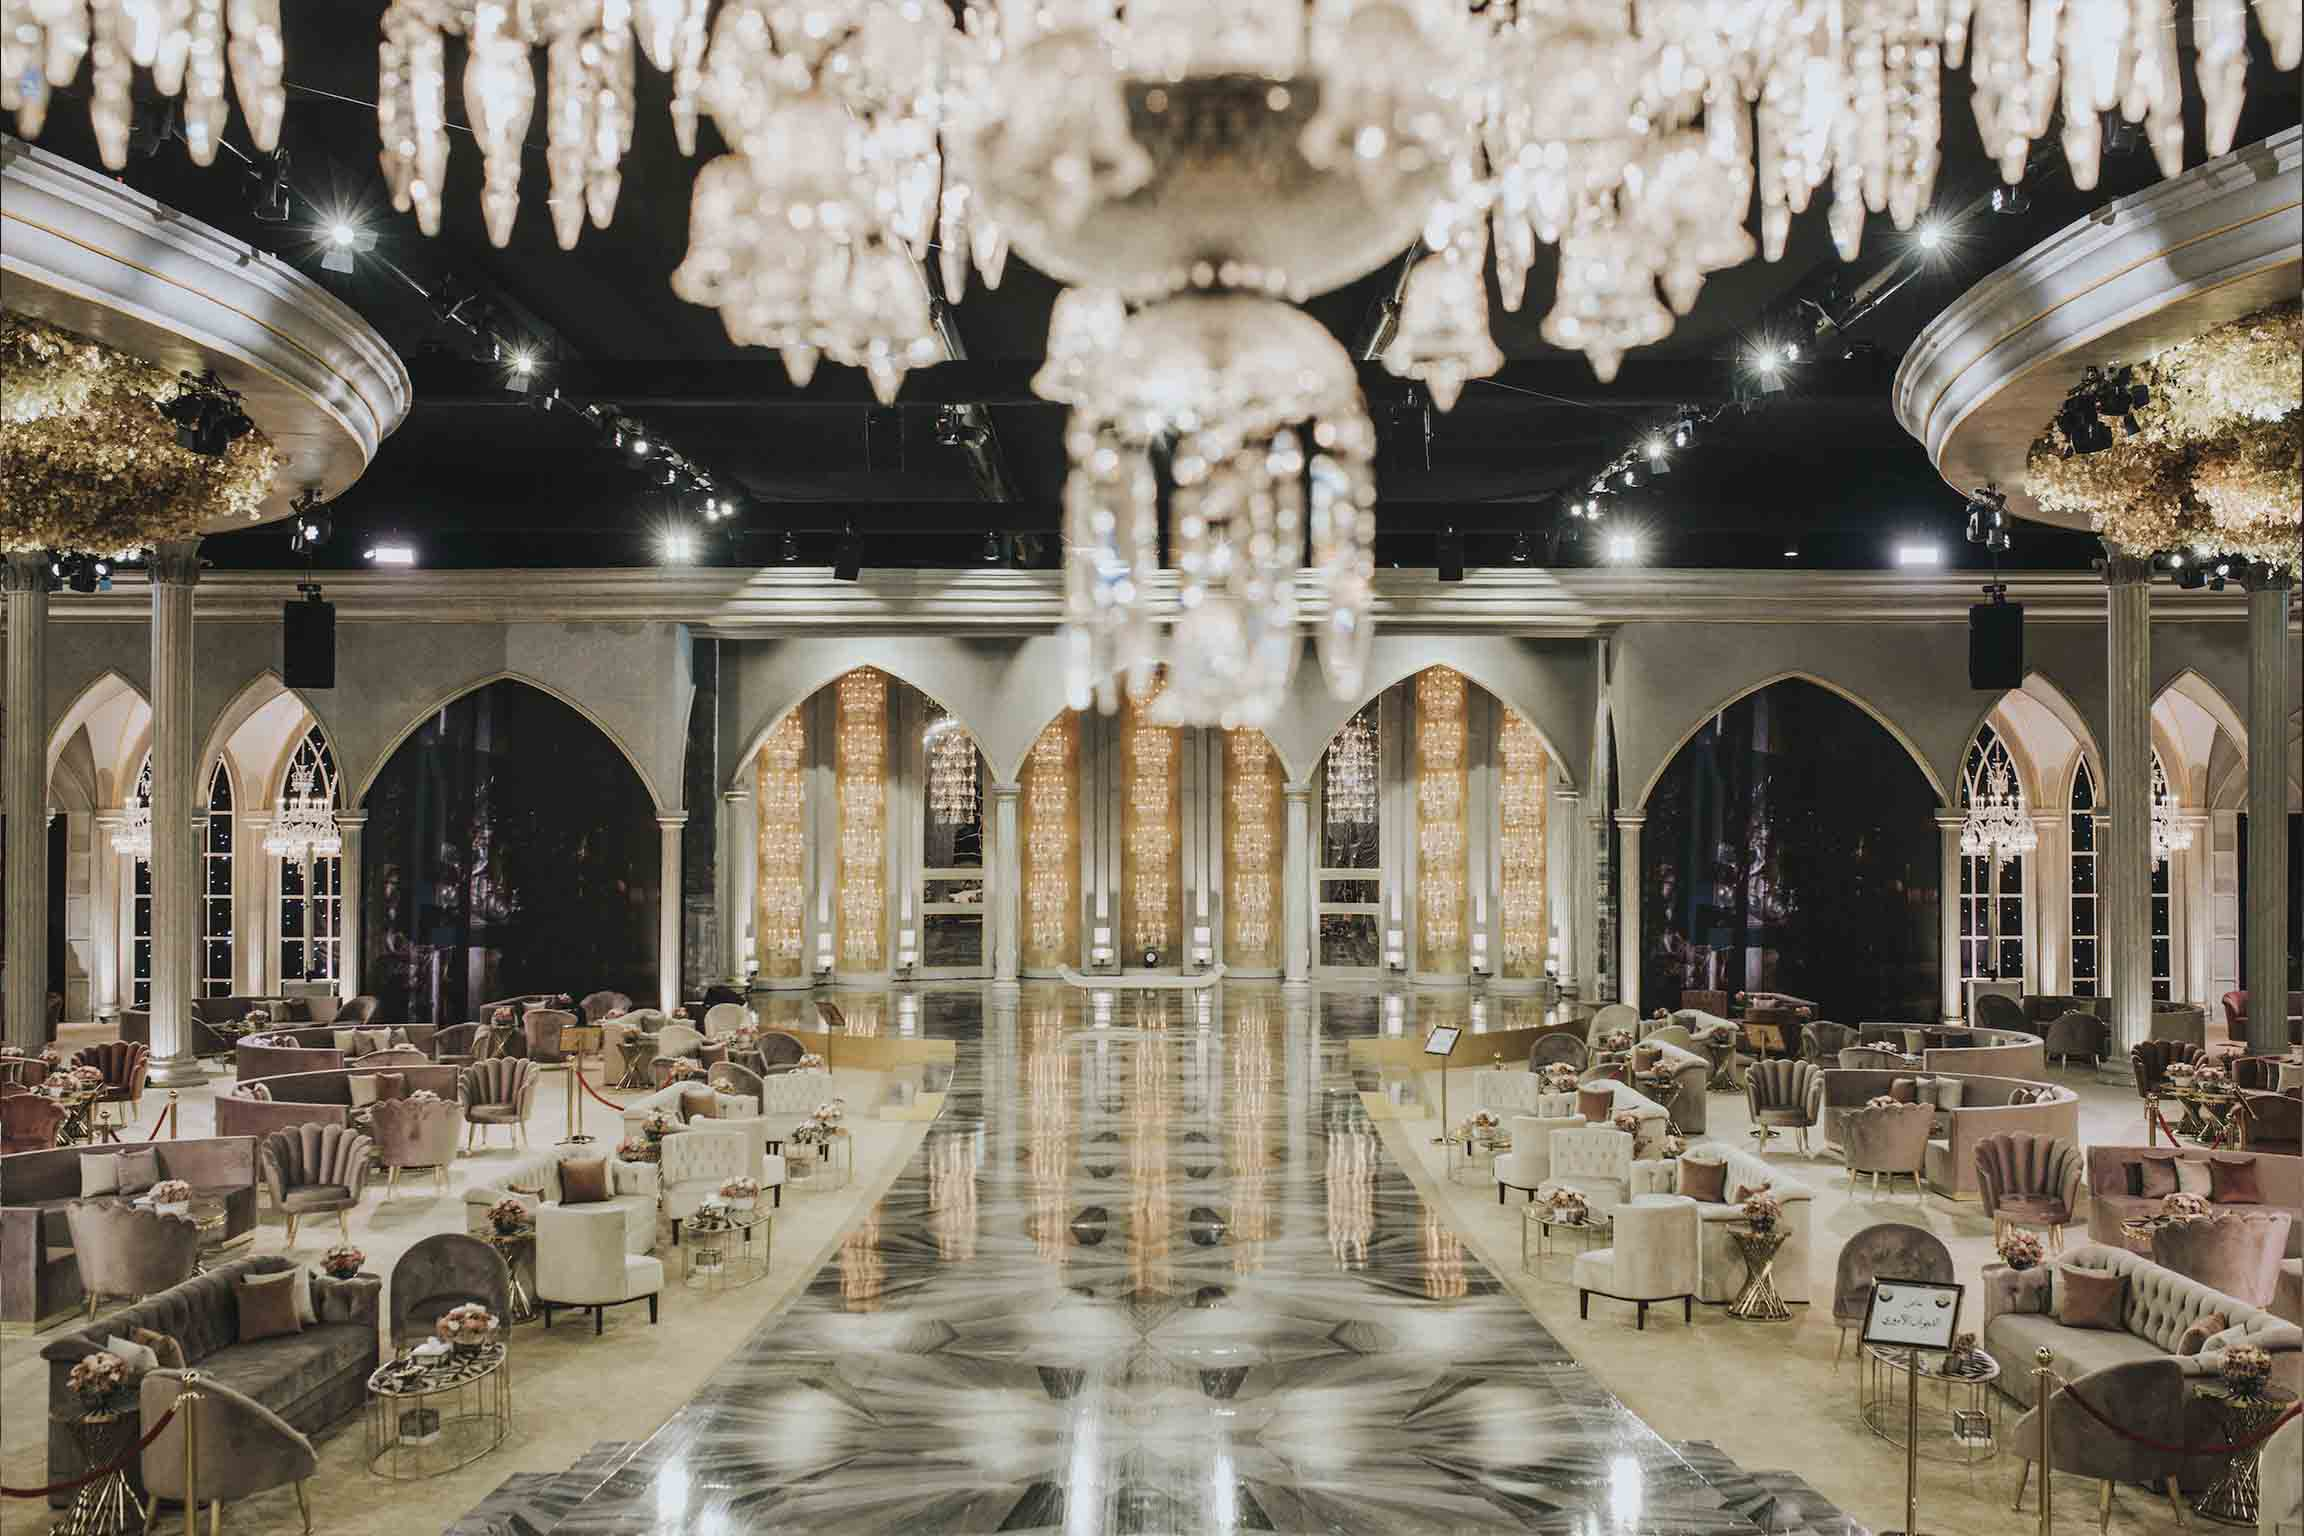 WEDDING - DATE: DECEMBER, 2018LOCATION: DOHA, QATARNUMBER OF GUESTS: 800